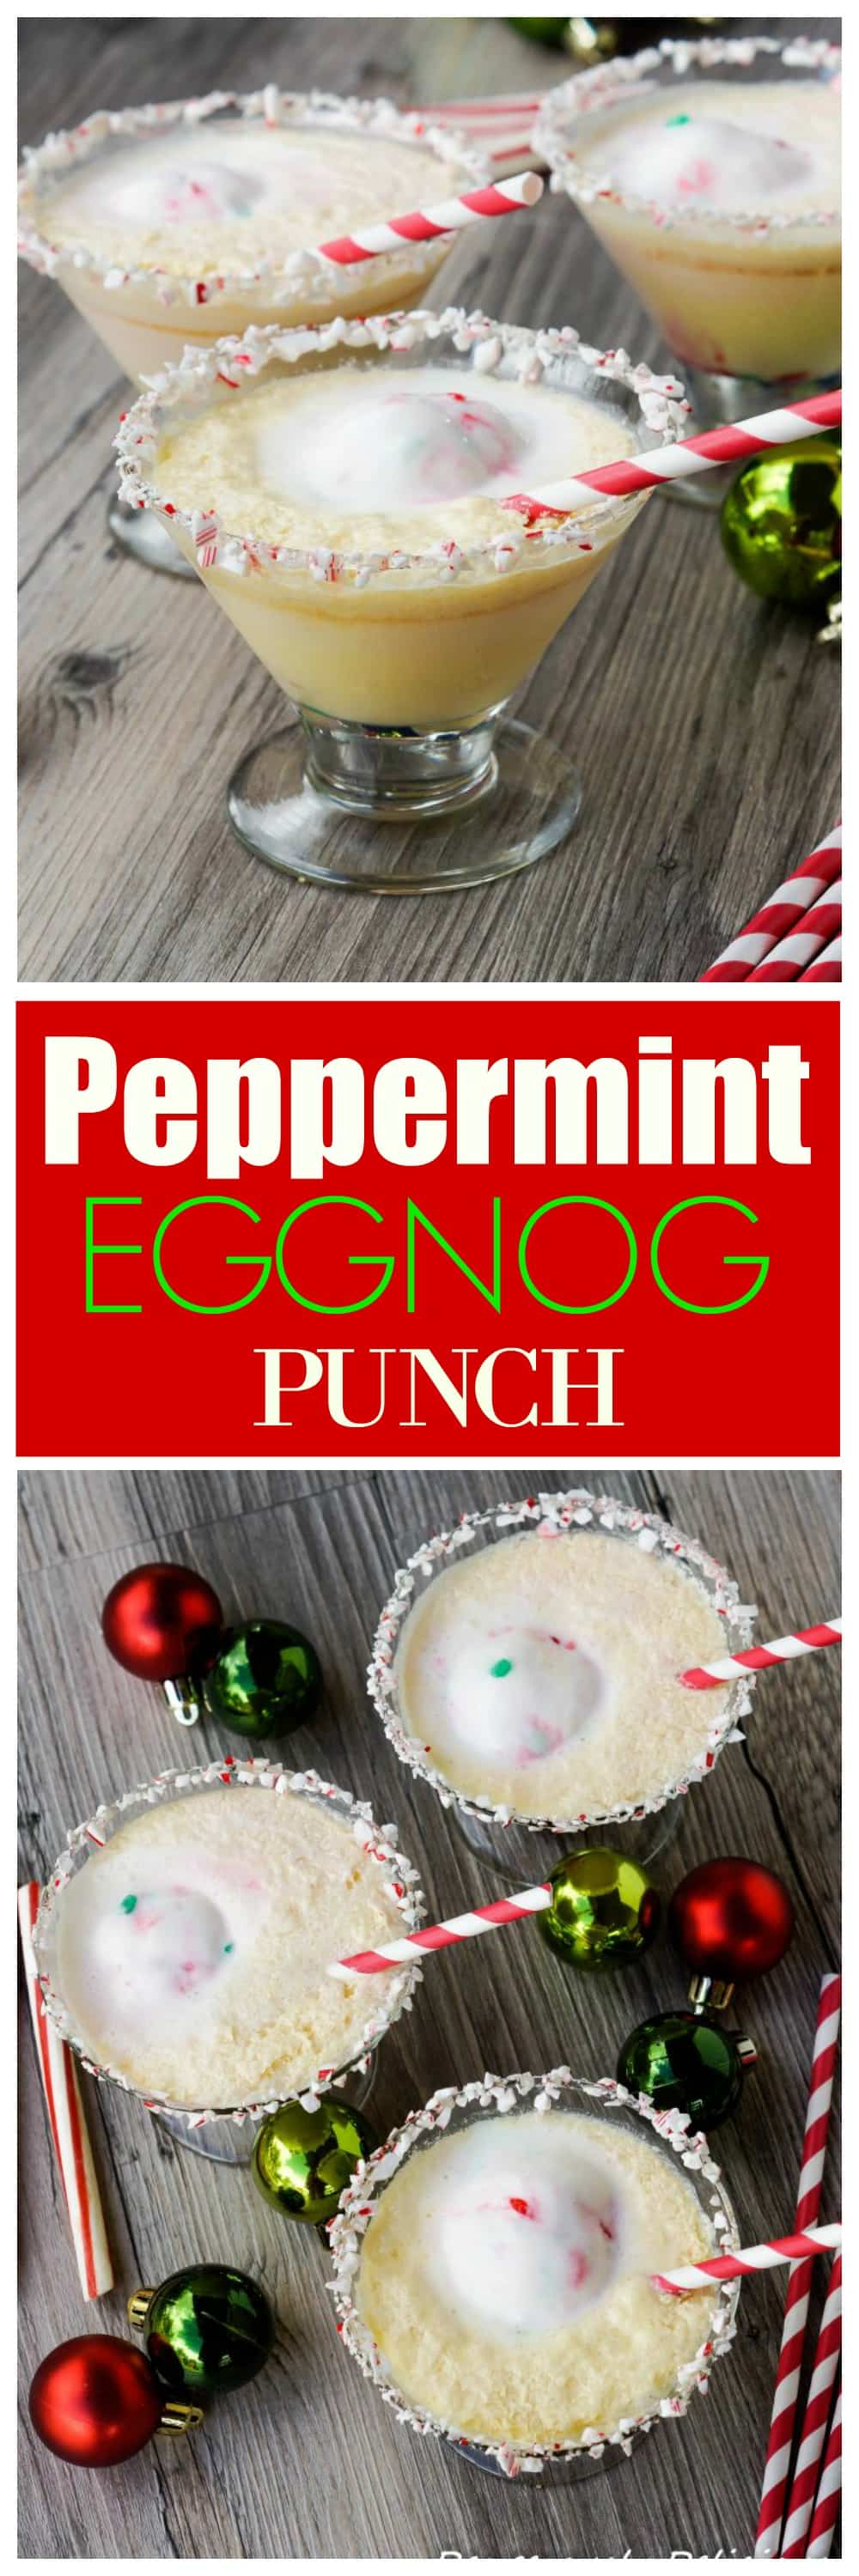 Peppermint Eggnog Punch